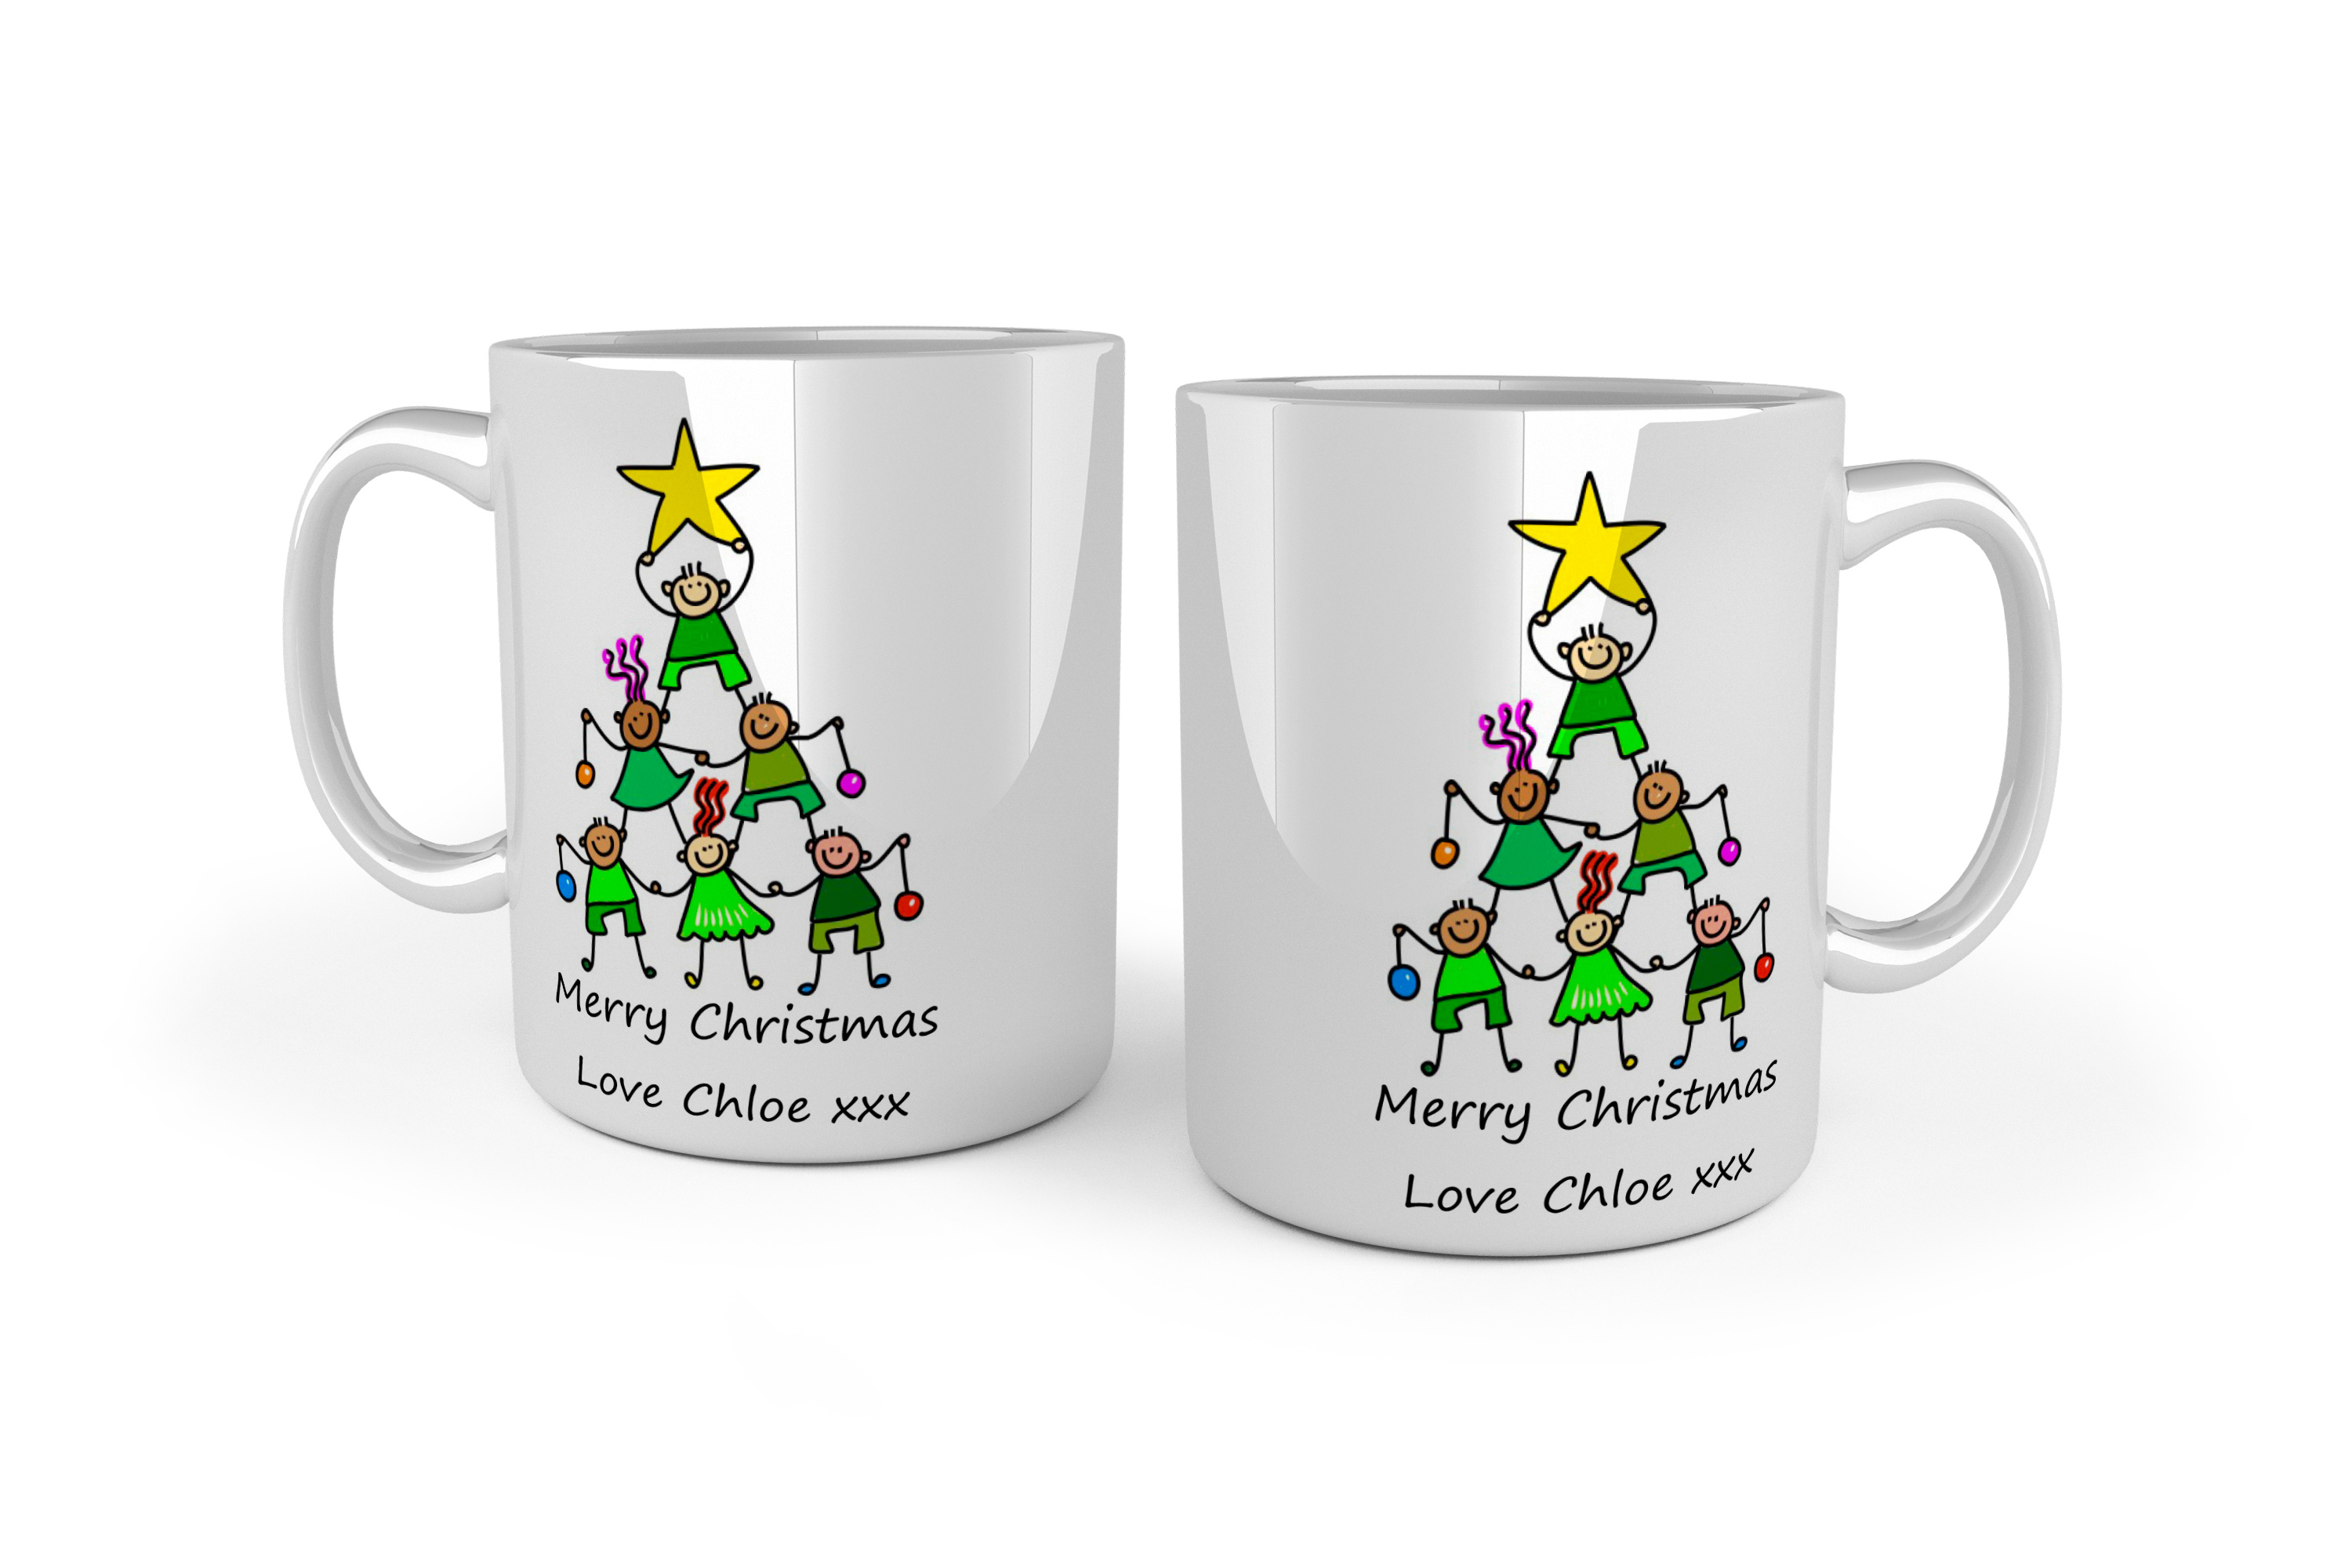 Christmas Mugs.Your Own Artwork Christmas Mugs